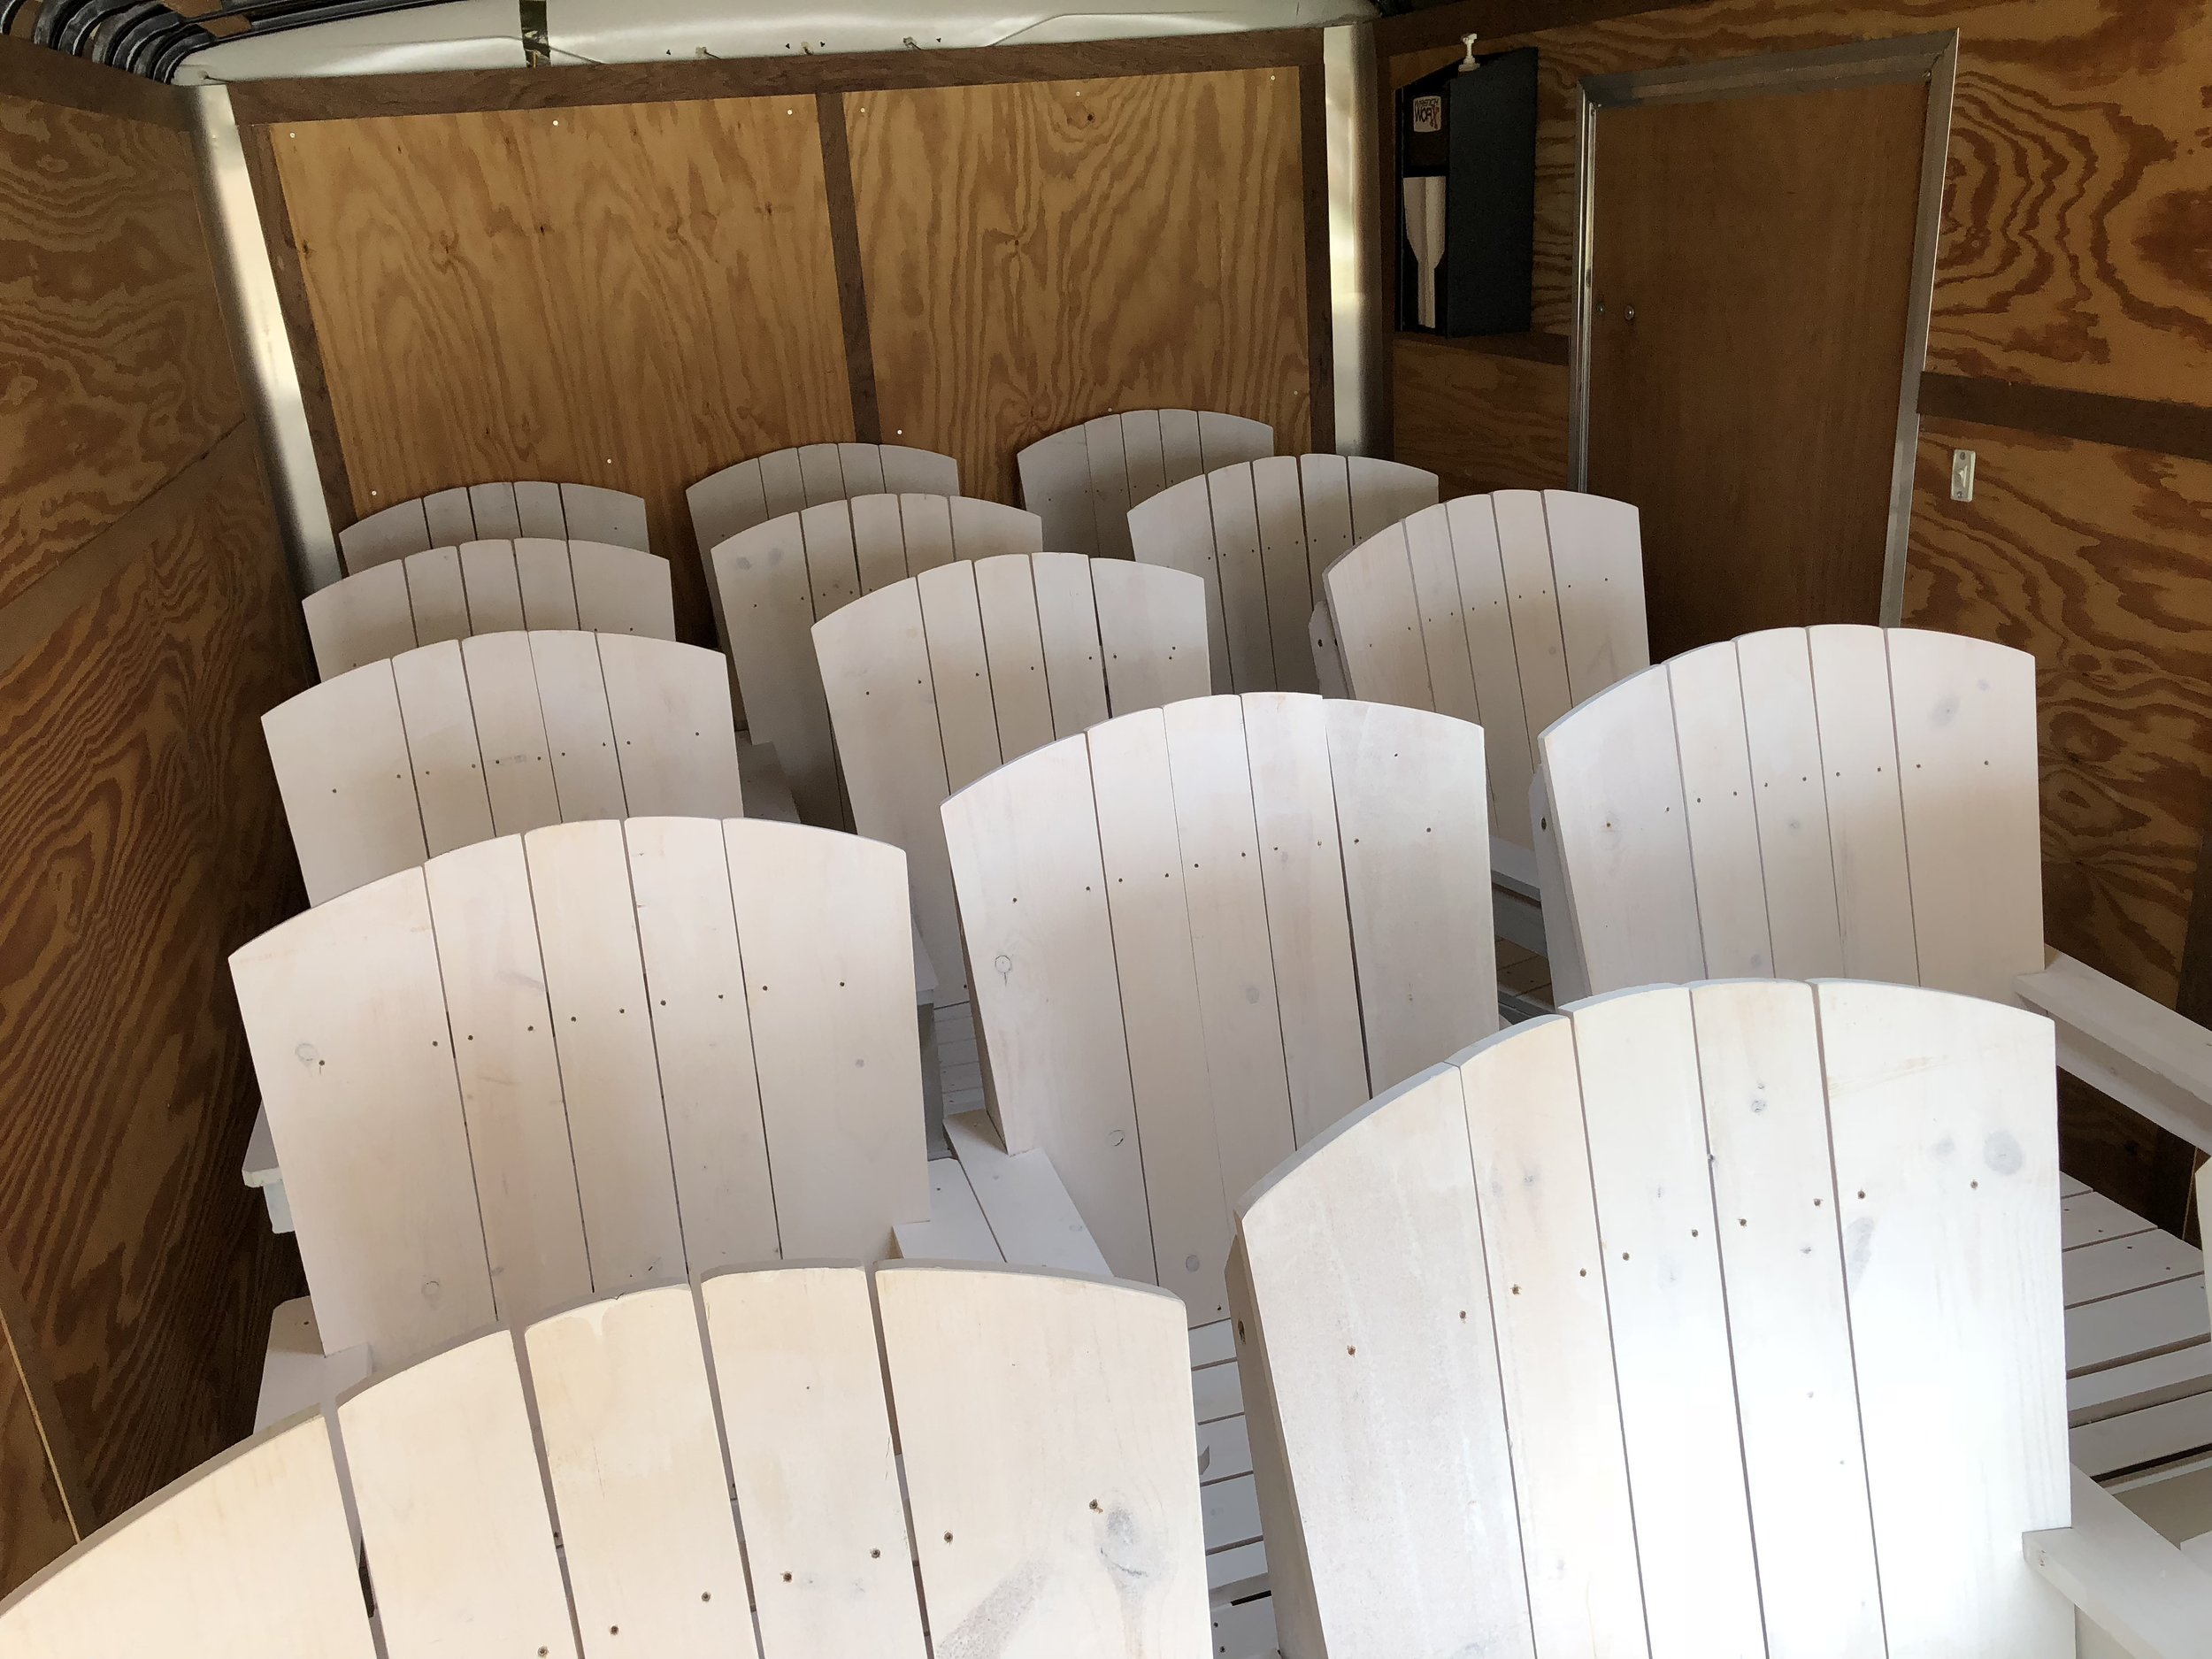 Completed Chairs in trailer